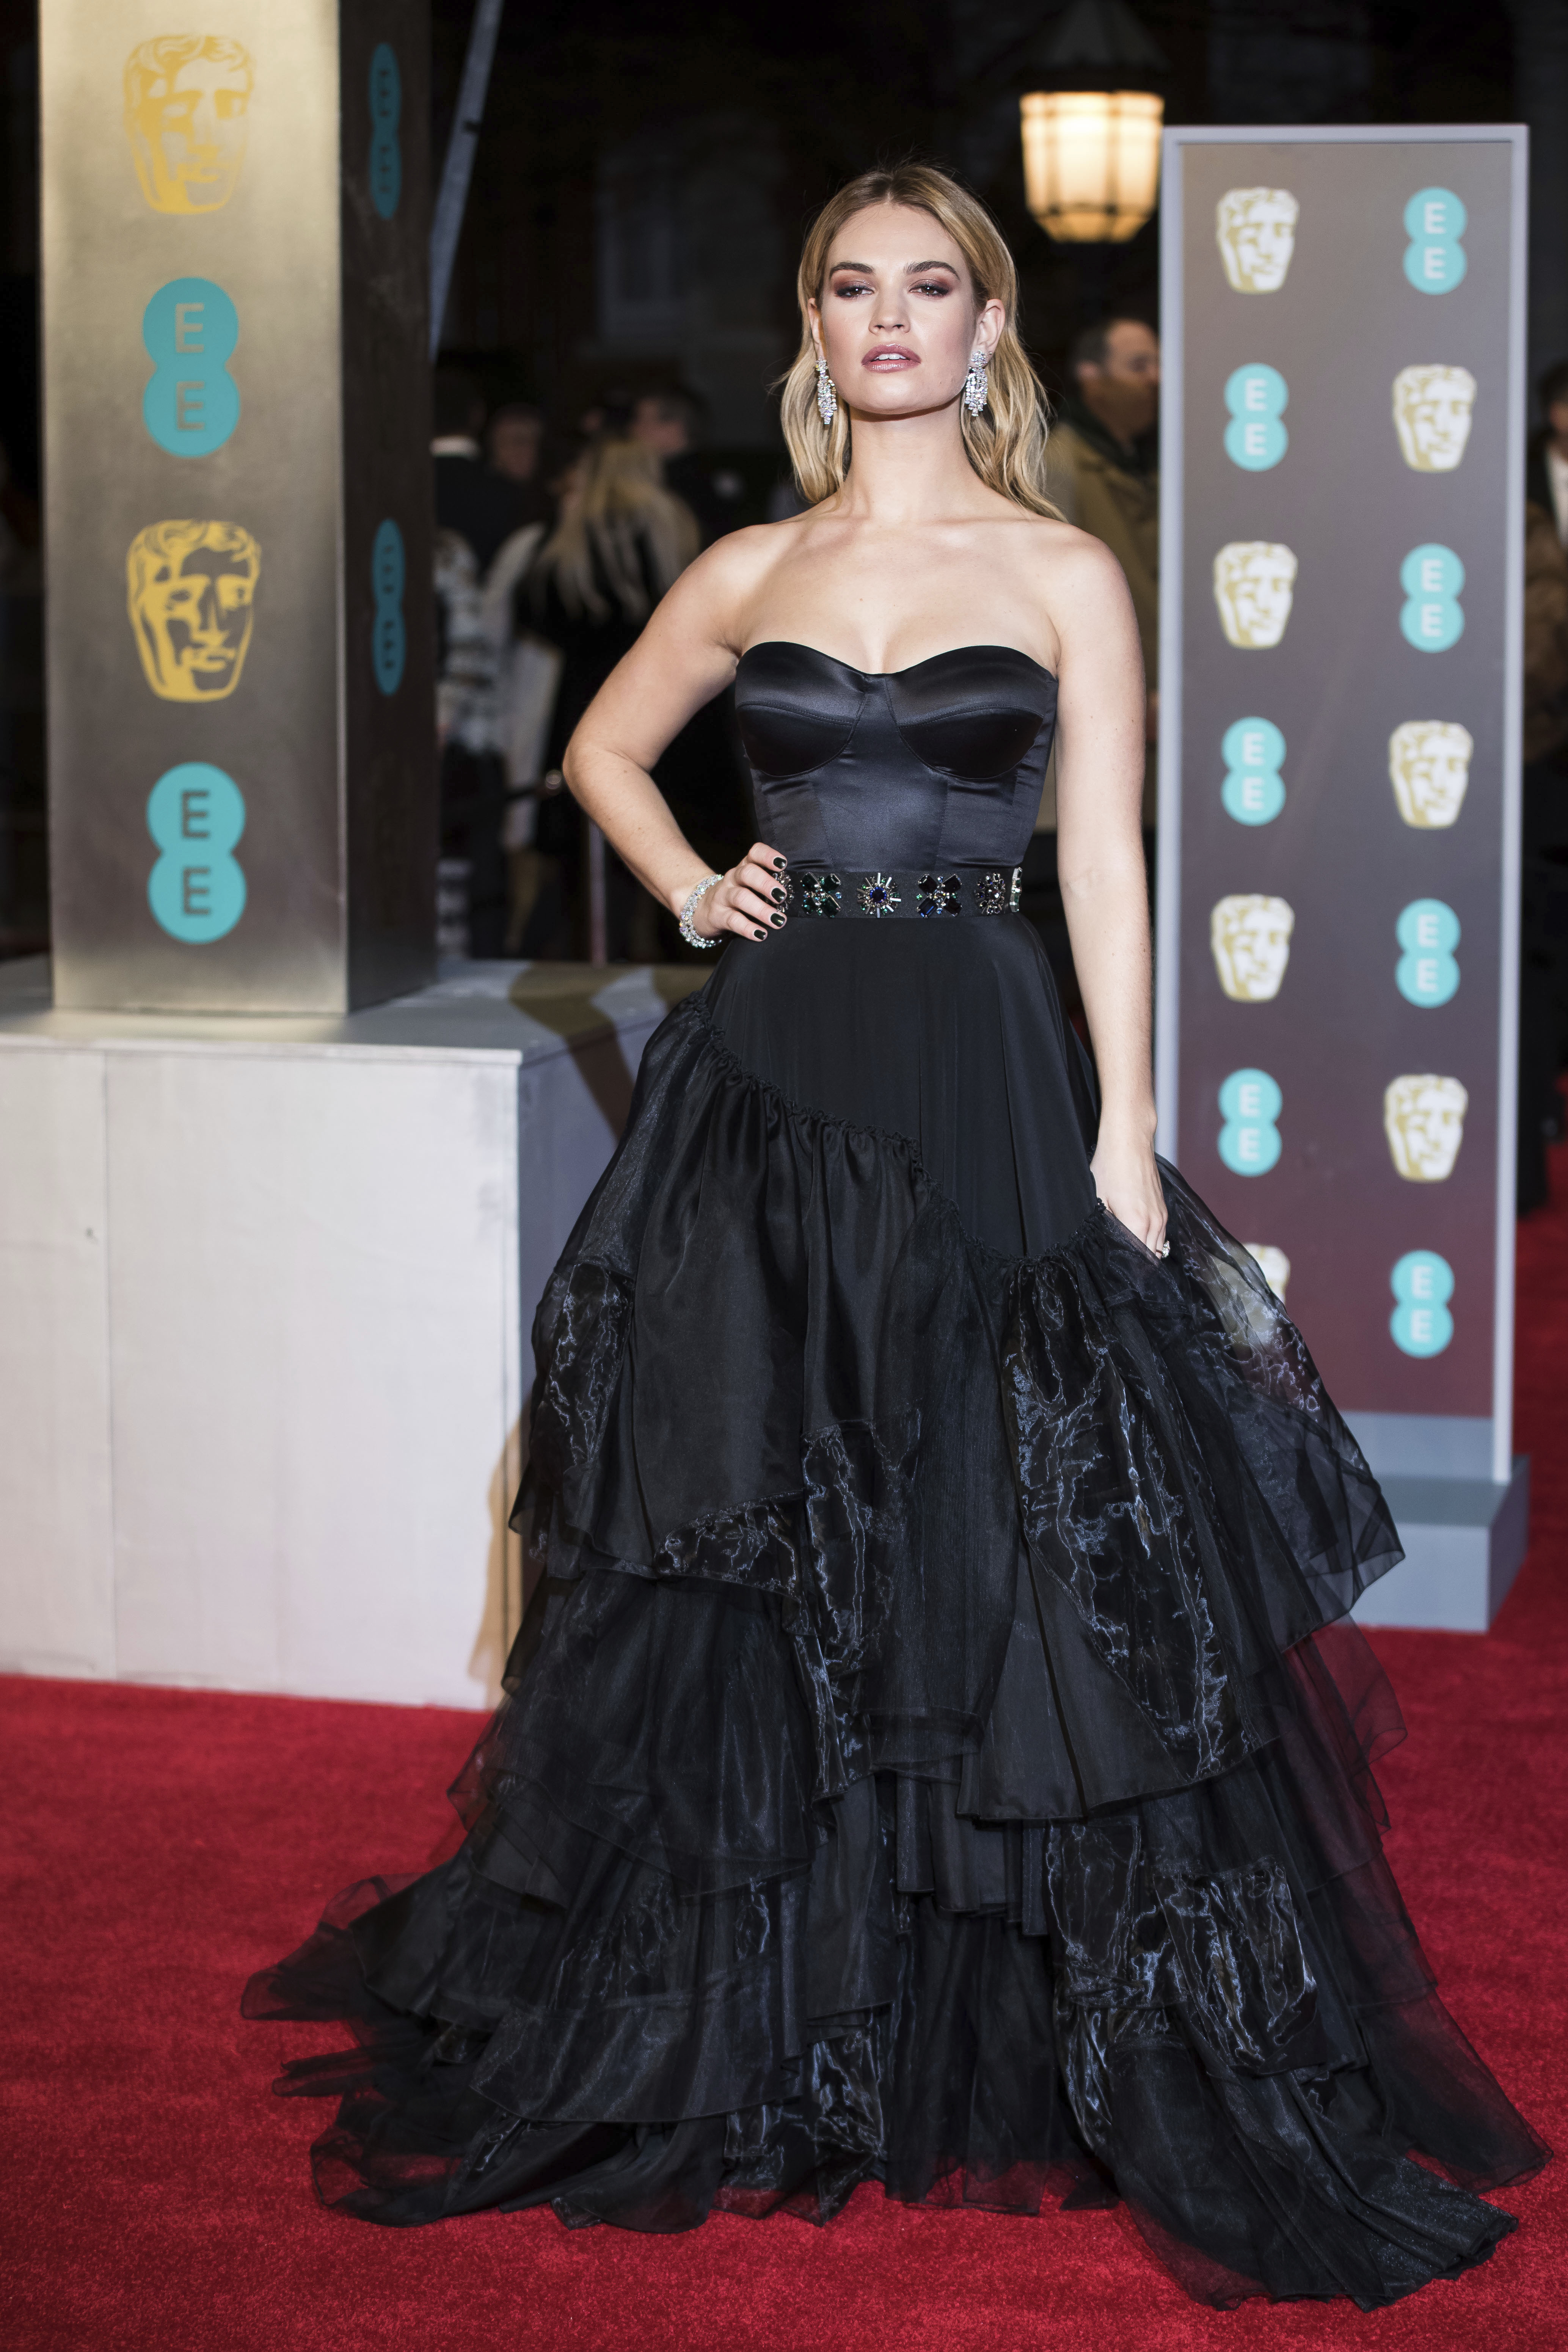 <div class='meta'><div class='origin-logo' data-origin='AP'></div><span class='caption-text' data-credit='Vianney Le Caer/Invision/AP'>Lily James poses for photographers upon arrival at the BAFTA Film Awards, in London, Sunday, Feb. 18, 2018.</span></div>